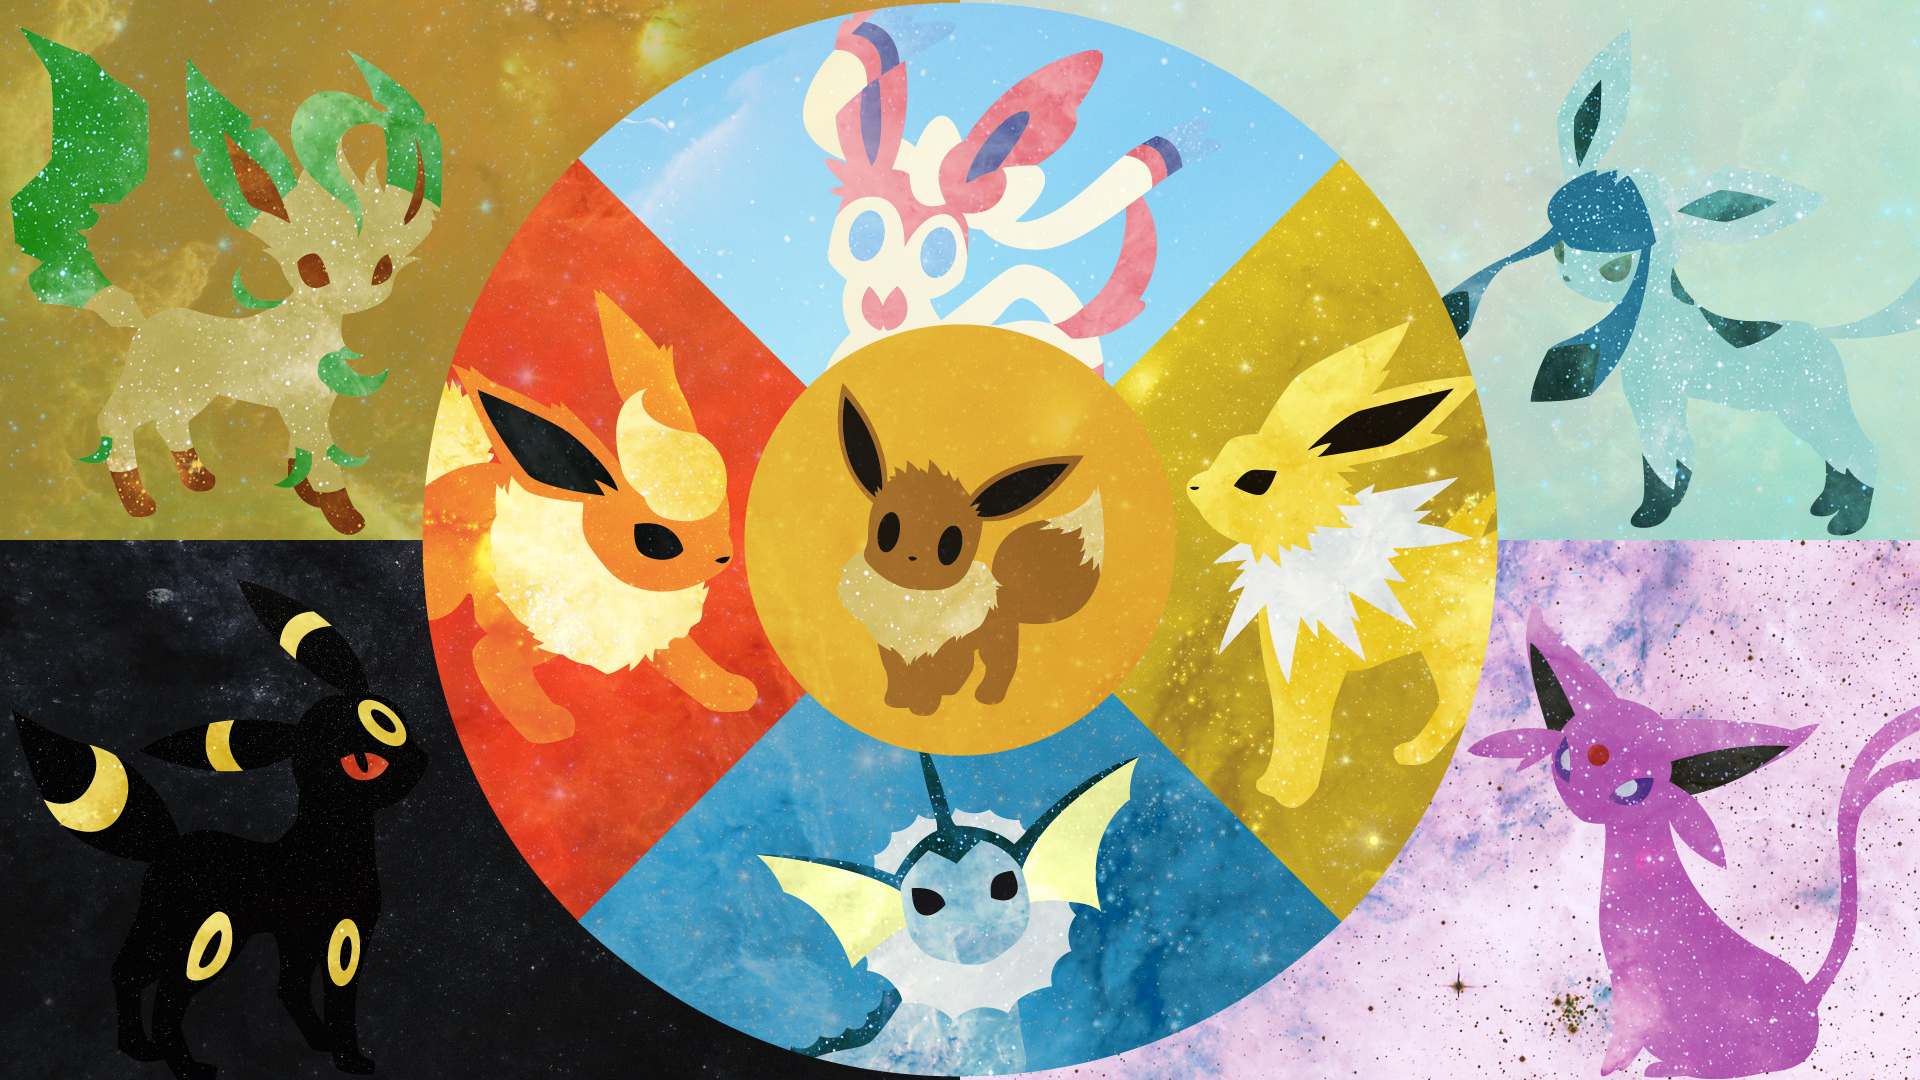 Eeveelution-by-DrBoxHead-wallpaper-wpc5804527